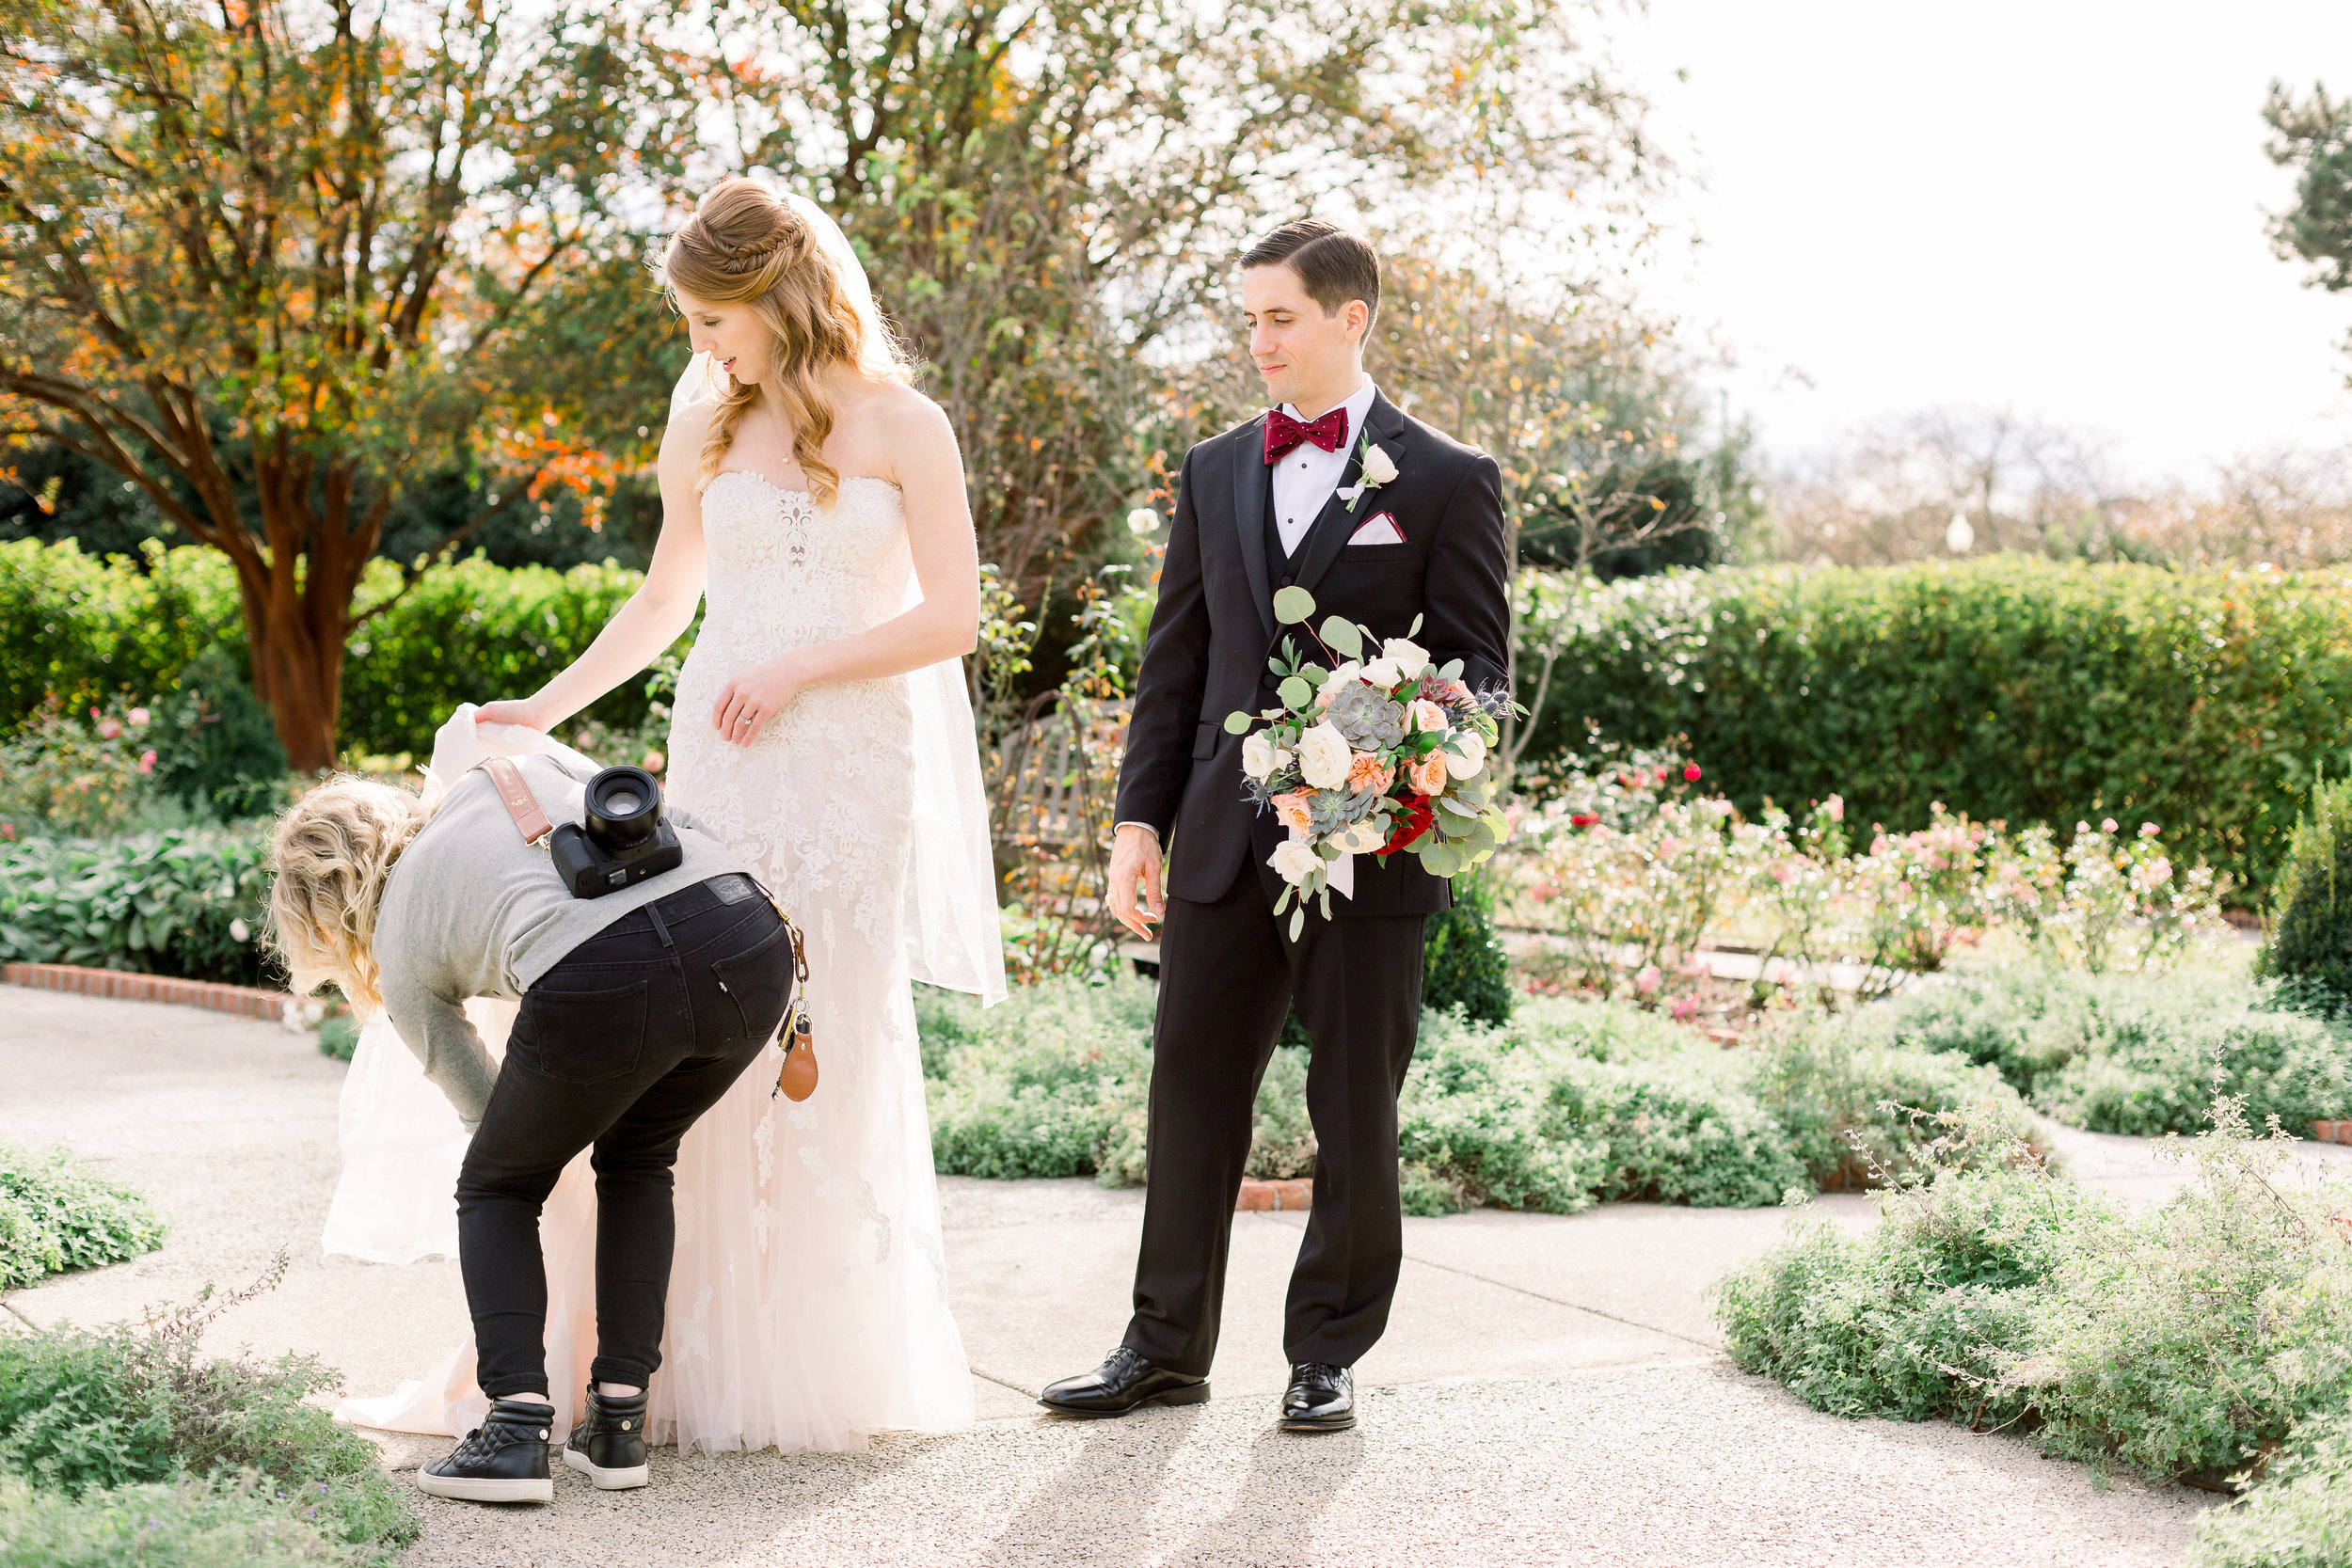 memphis-botanic-garden-wedding-mary-kate-steele-photography